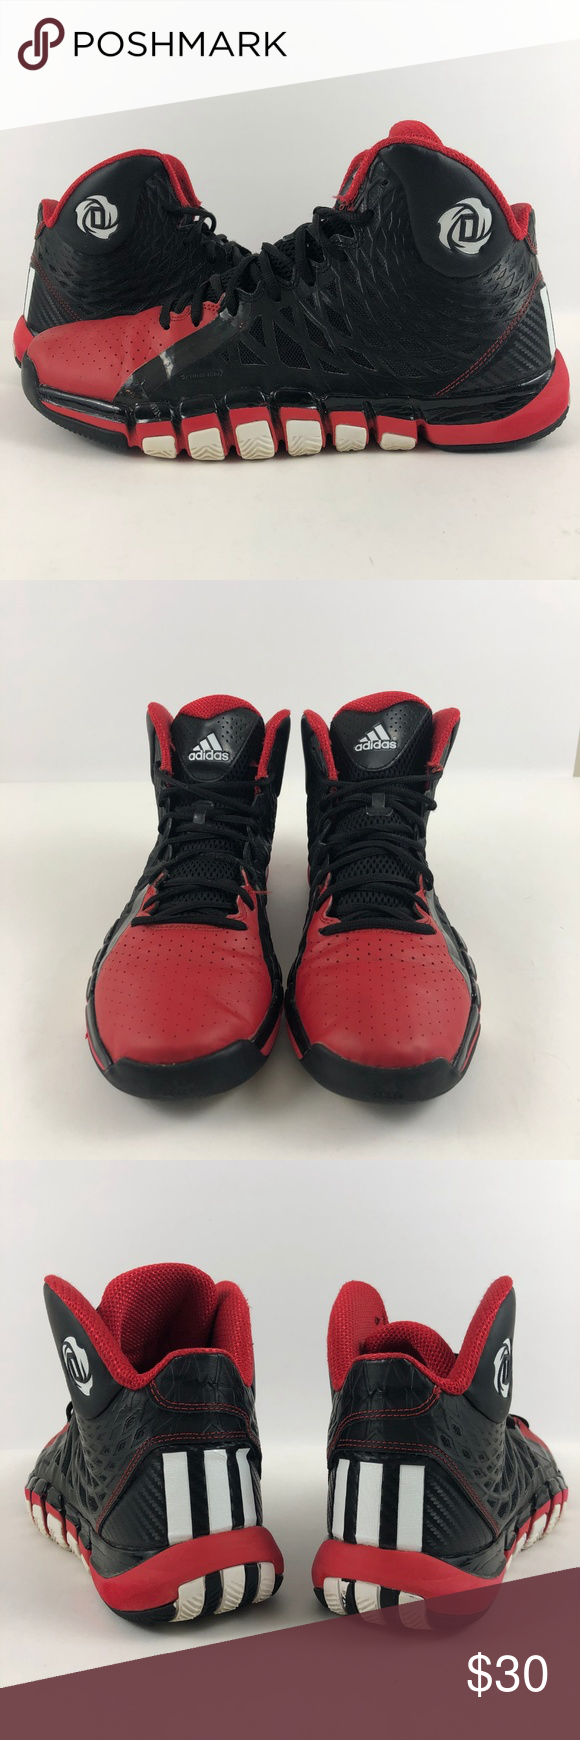 sports shoes 64dbc 0b032 adidas D Rose 773 II 2 Derrick Black white red adidas D Rose 773